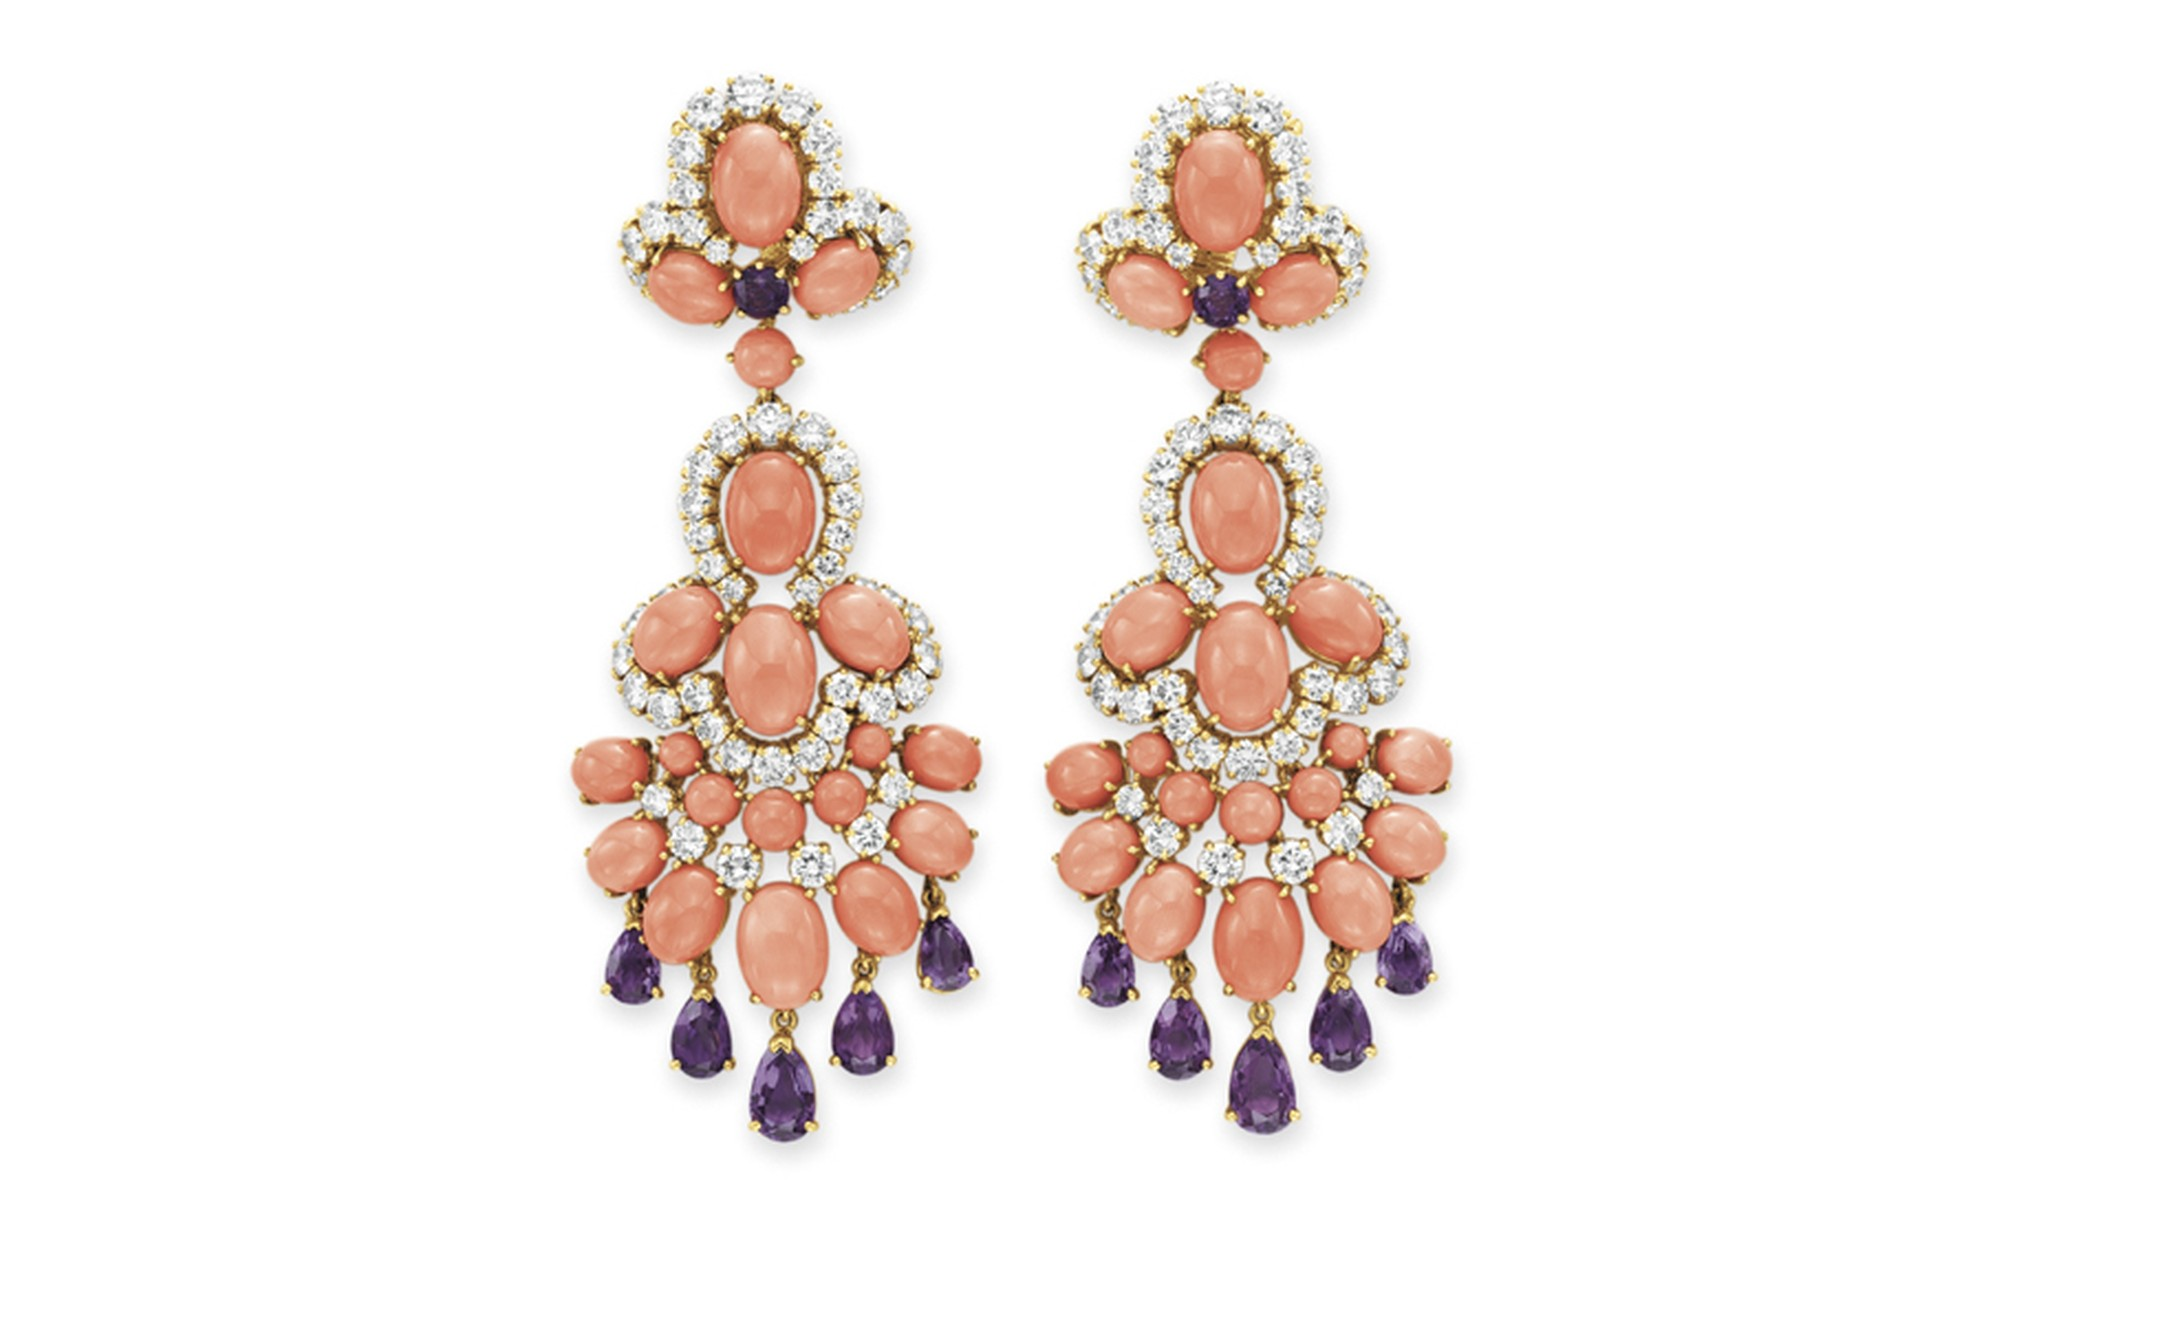 Van Cleef & Arpels. Panka Coral, Amethyst, Diamond, Platinum and Yellow Gold Ear Pendants (1971). © Christie's Images 2011. POA.